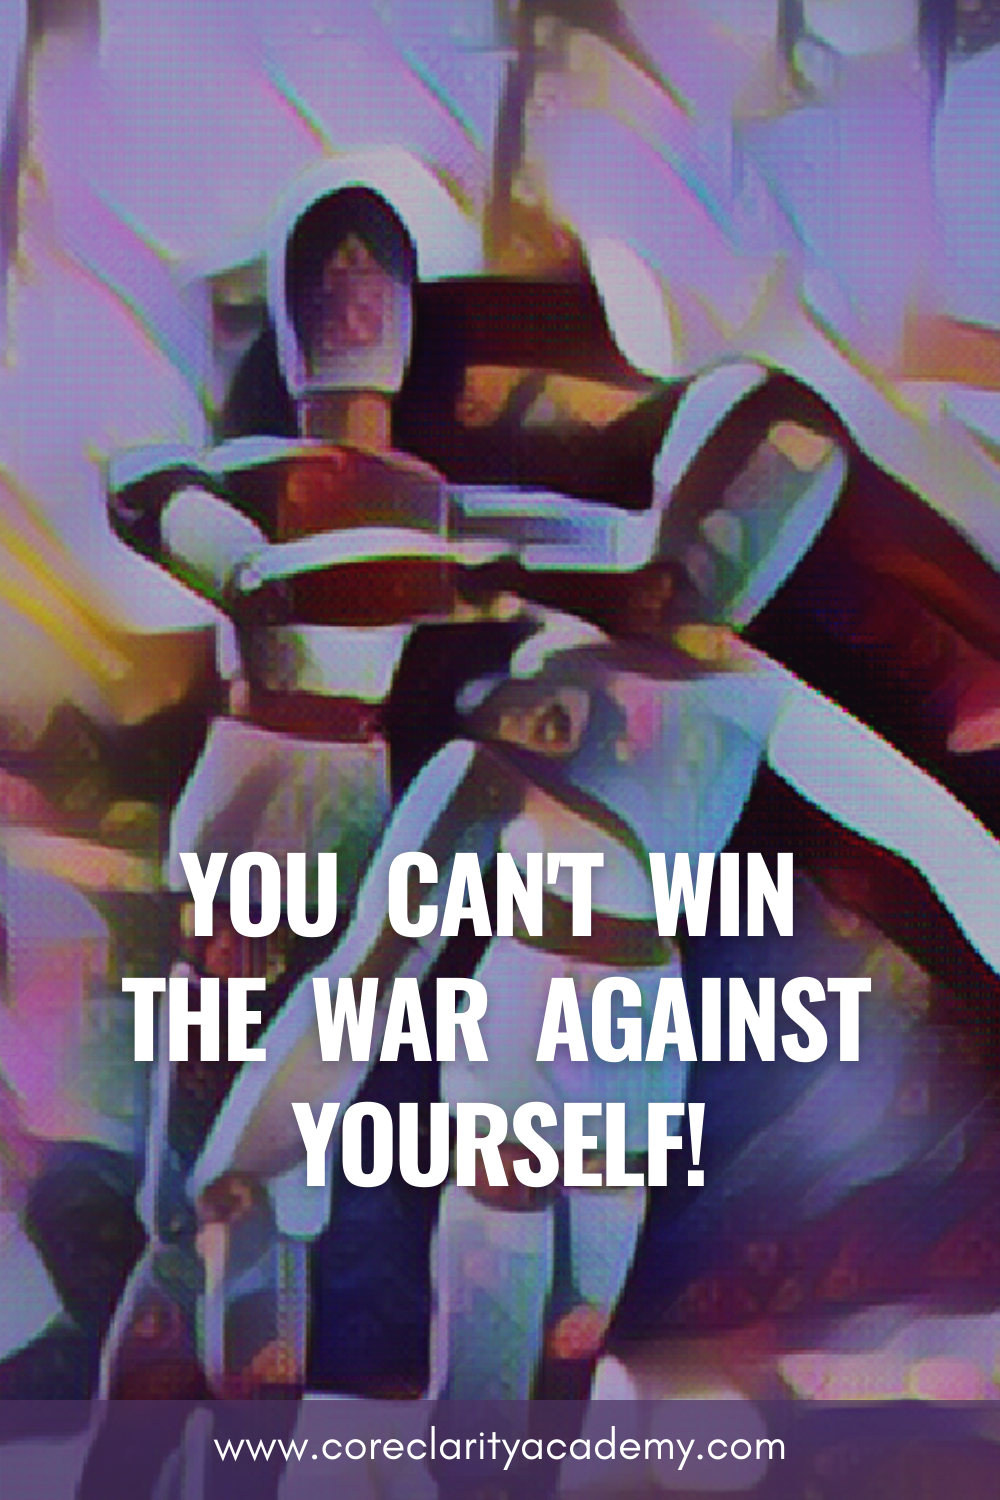 The truth is: you can't win the war against yourself!